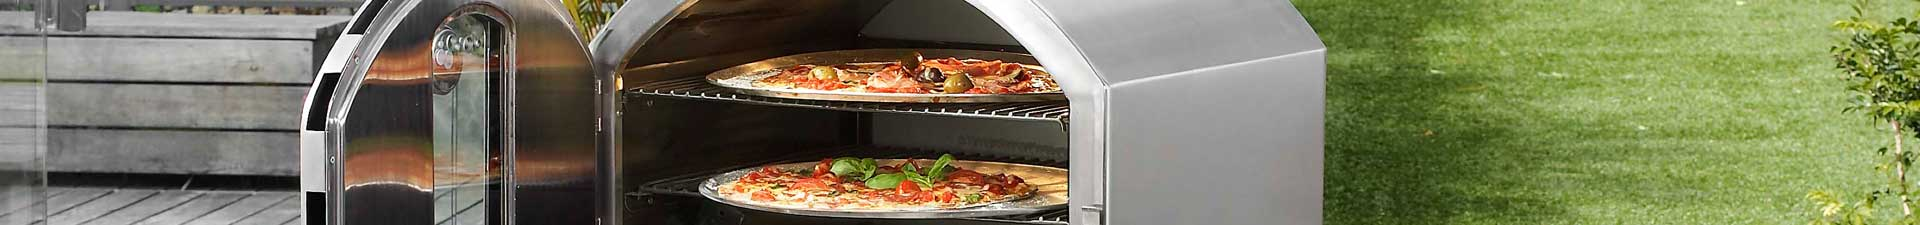 Stainless Steel Deluxe Pizza Oven